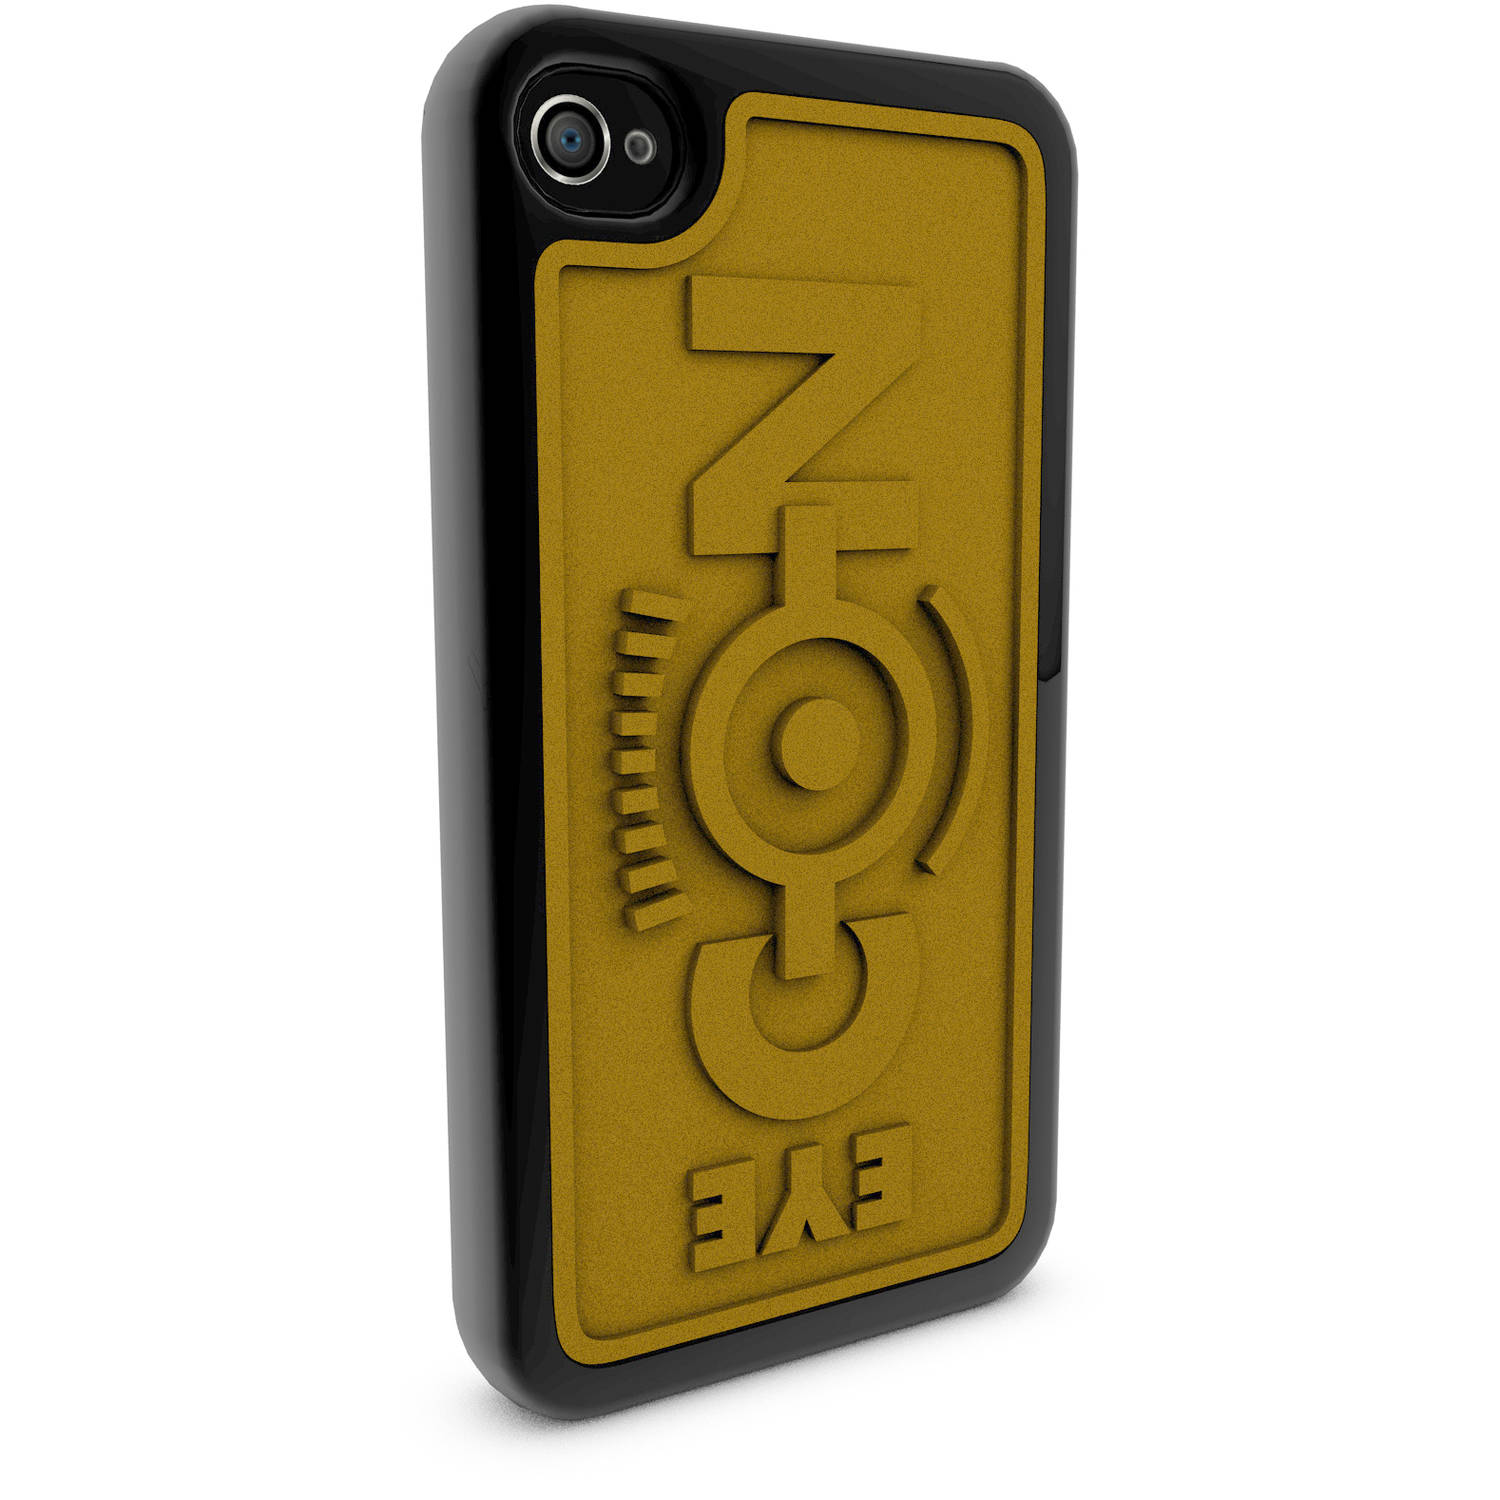 Apple iPhone 4 and 4S 3D Printed Custom Phone Case - Despicable Me - Eye-Con